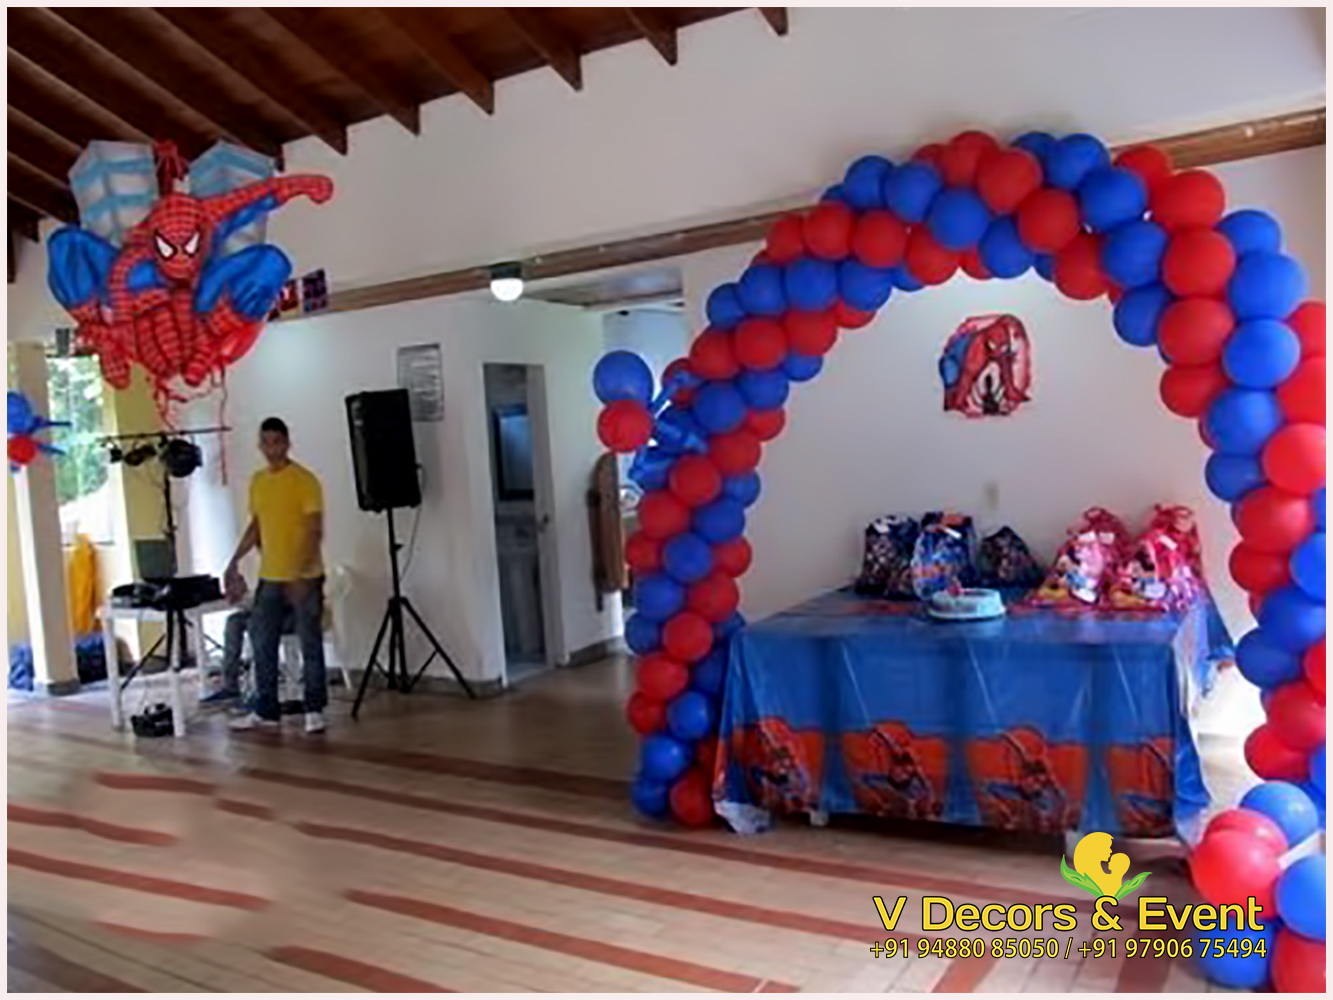 Spiderman Themed Birthday Decorations Pondicherry, Spiderman Birthday decorations pondicherry, Spiderman themed decorations Pondicherry